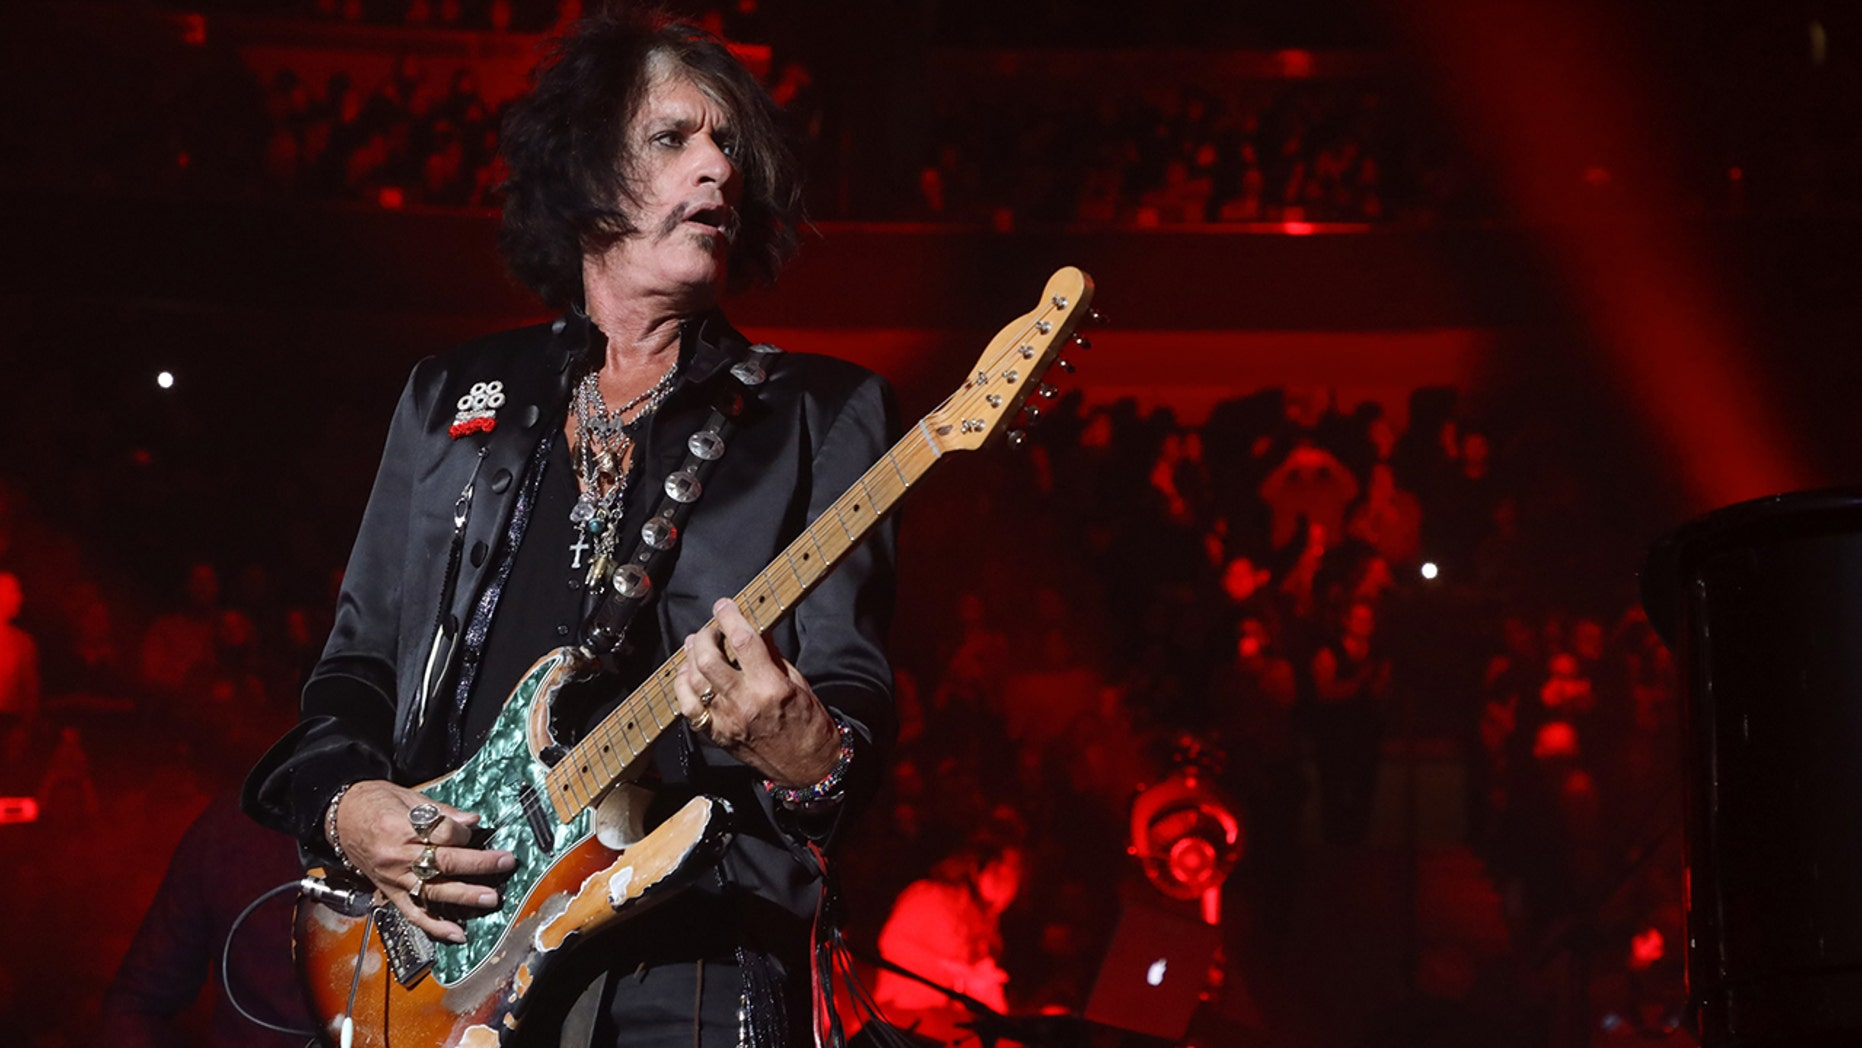 Aerosmith's Joe Perry Assures Fans He's 'Doing Well' After Being Hospitalized